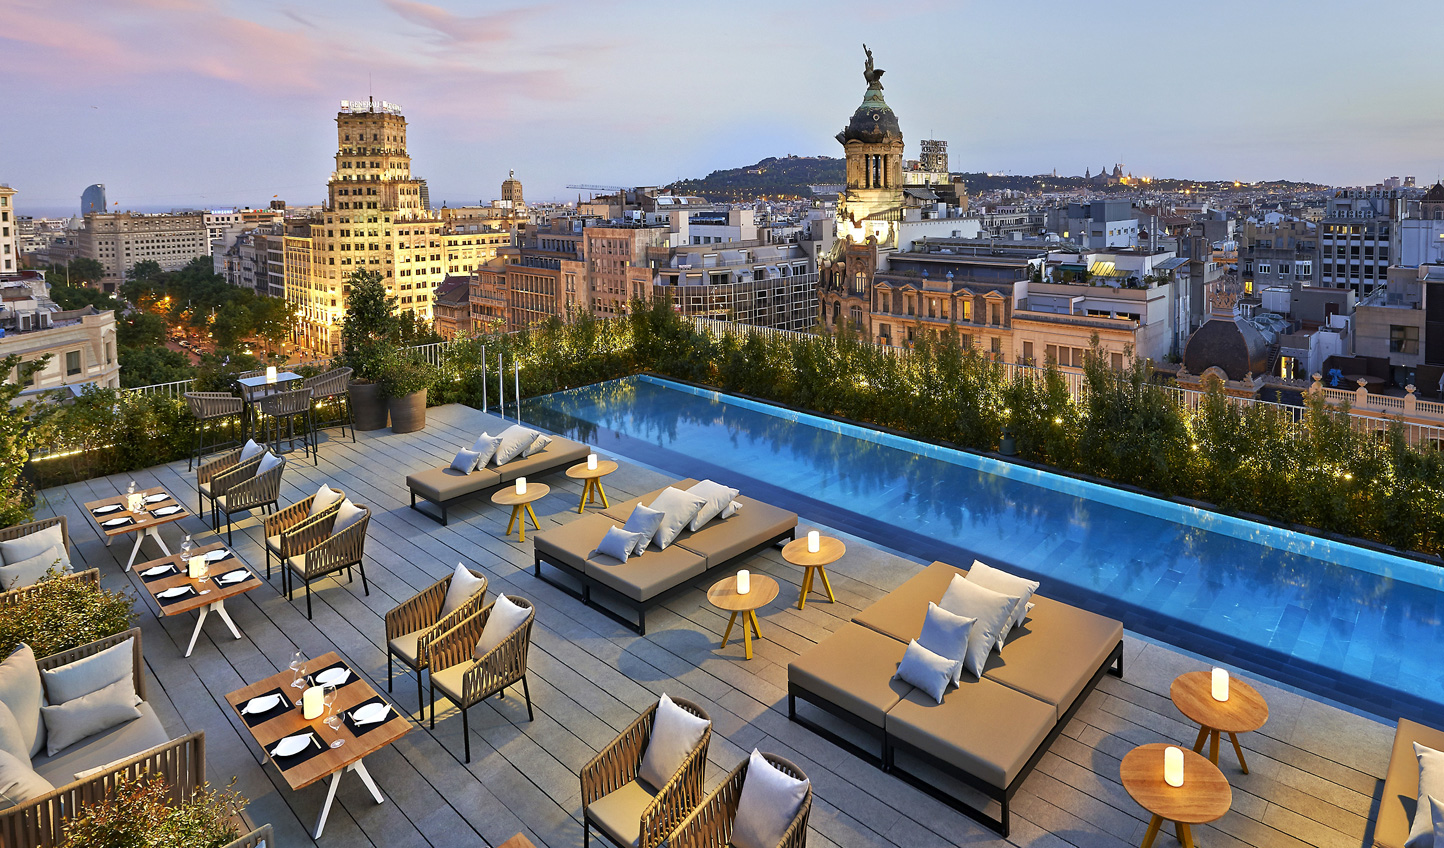 Soak in the Barcelona atmosphere from the stunning Mandarin Oriental roof terrace